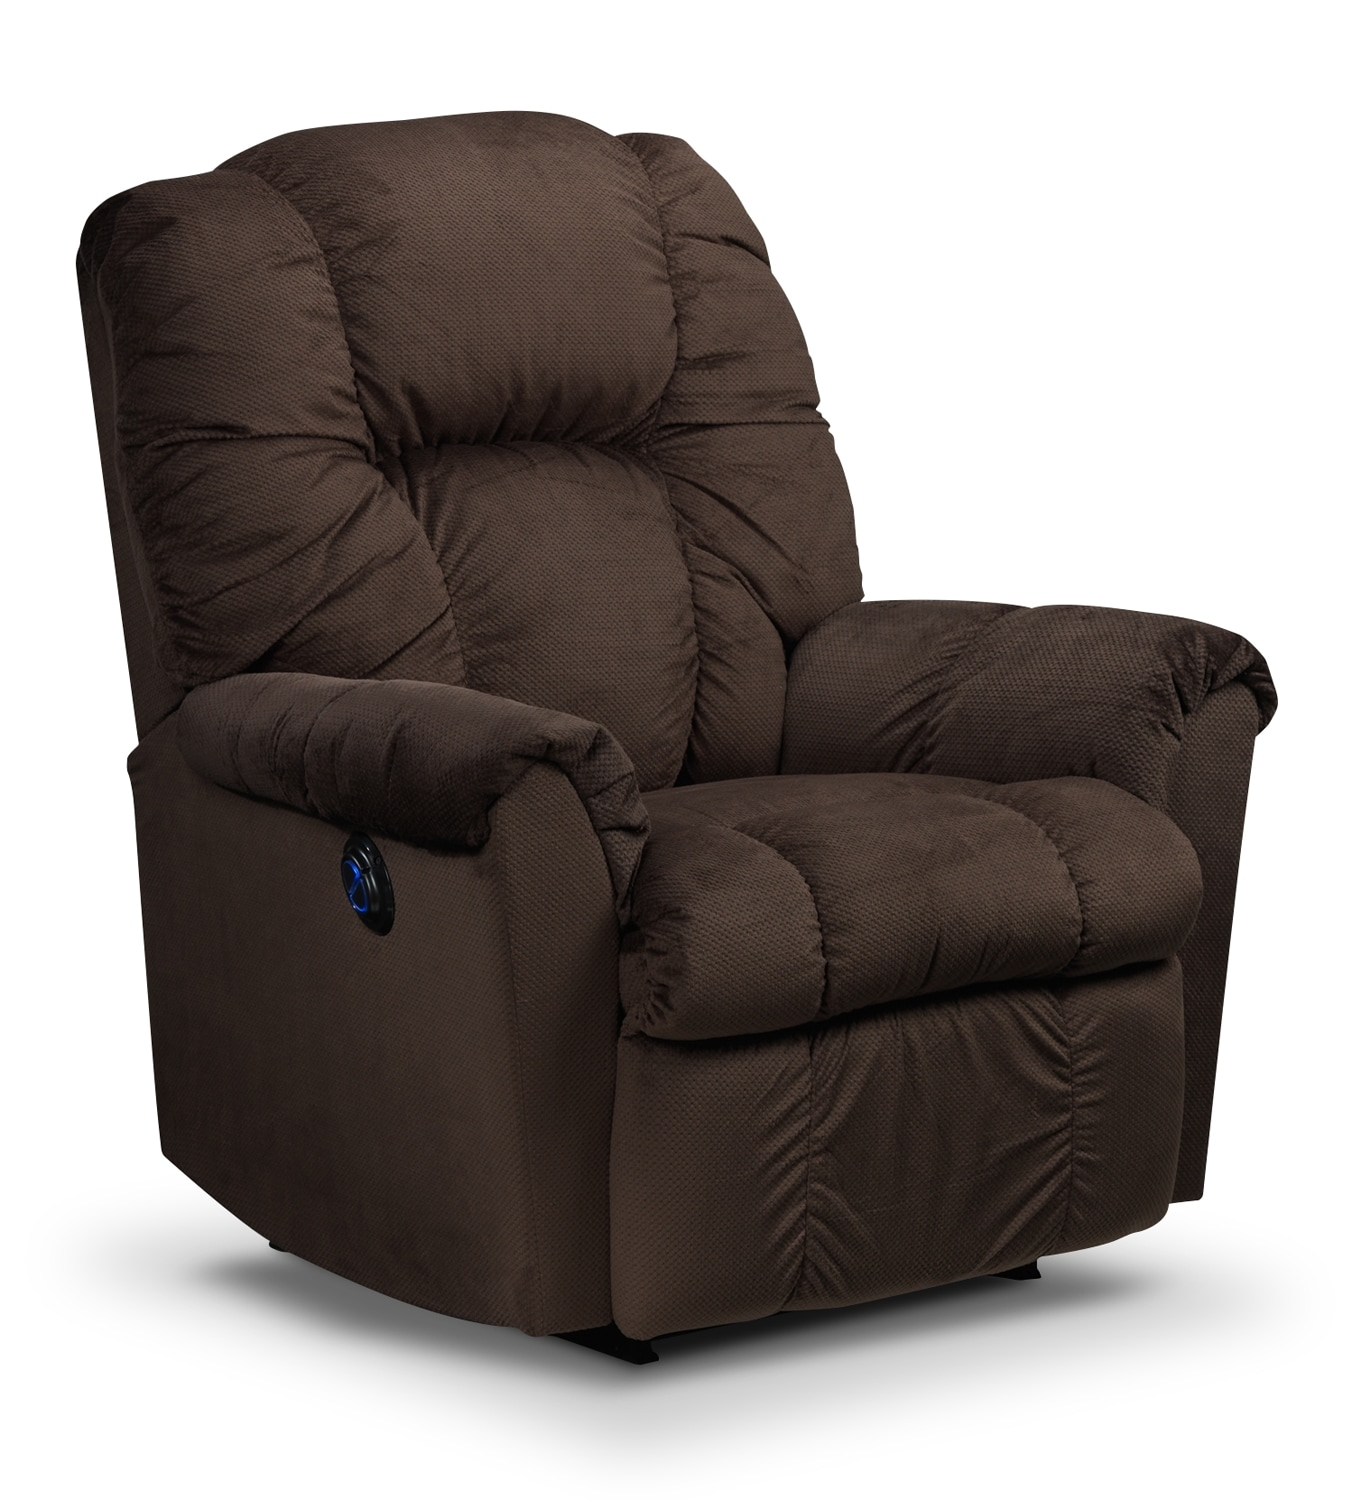 Amaretto Power Rocker Recliner - Brown